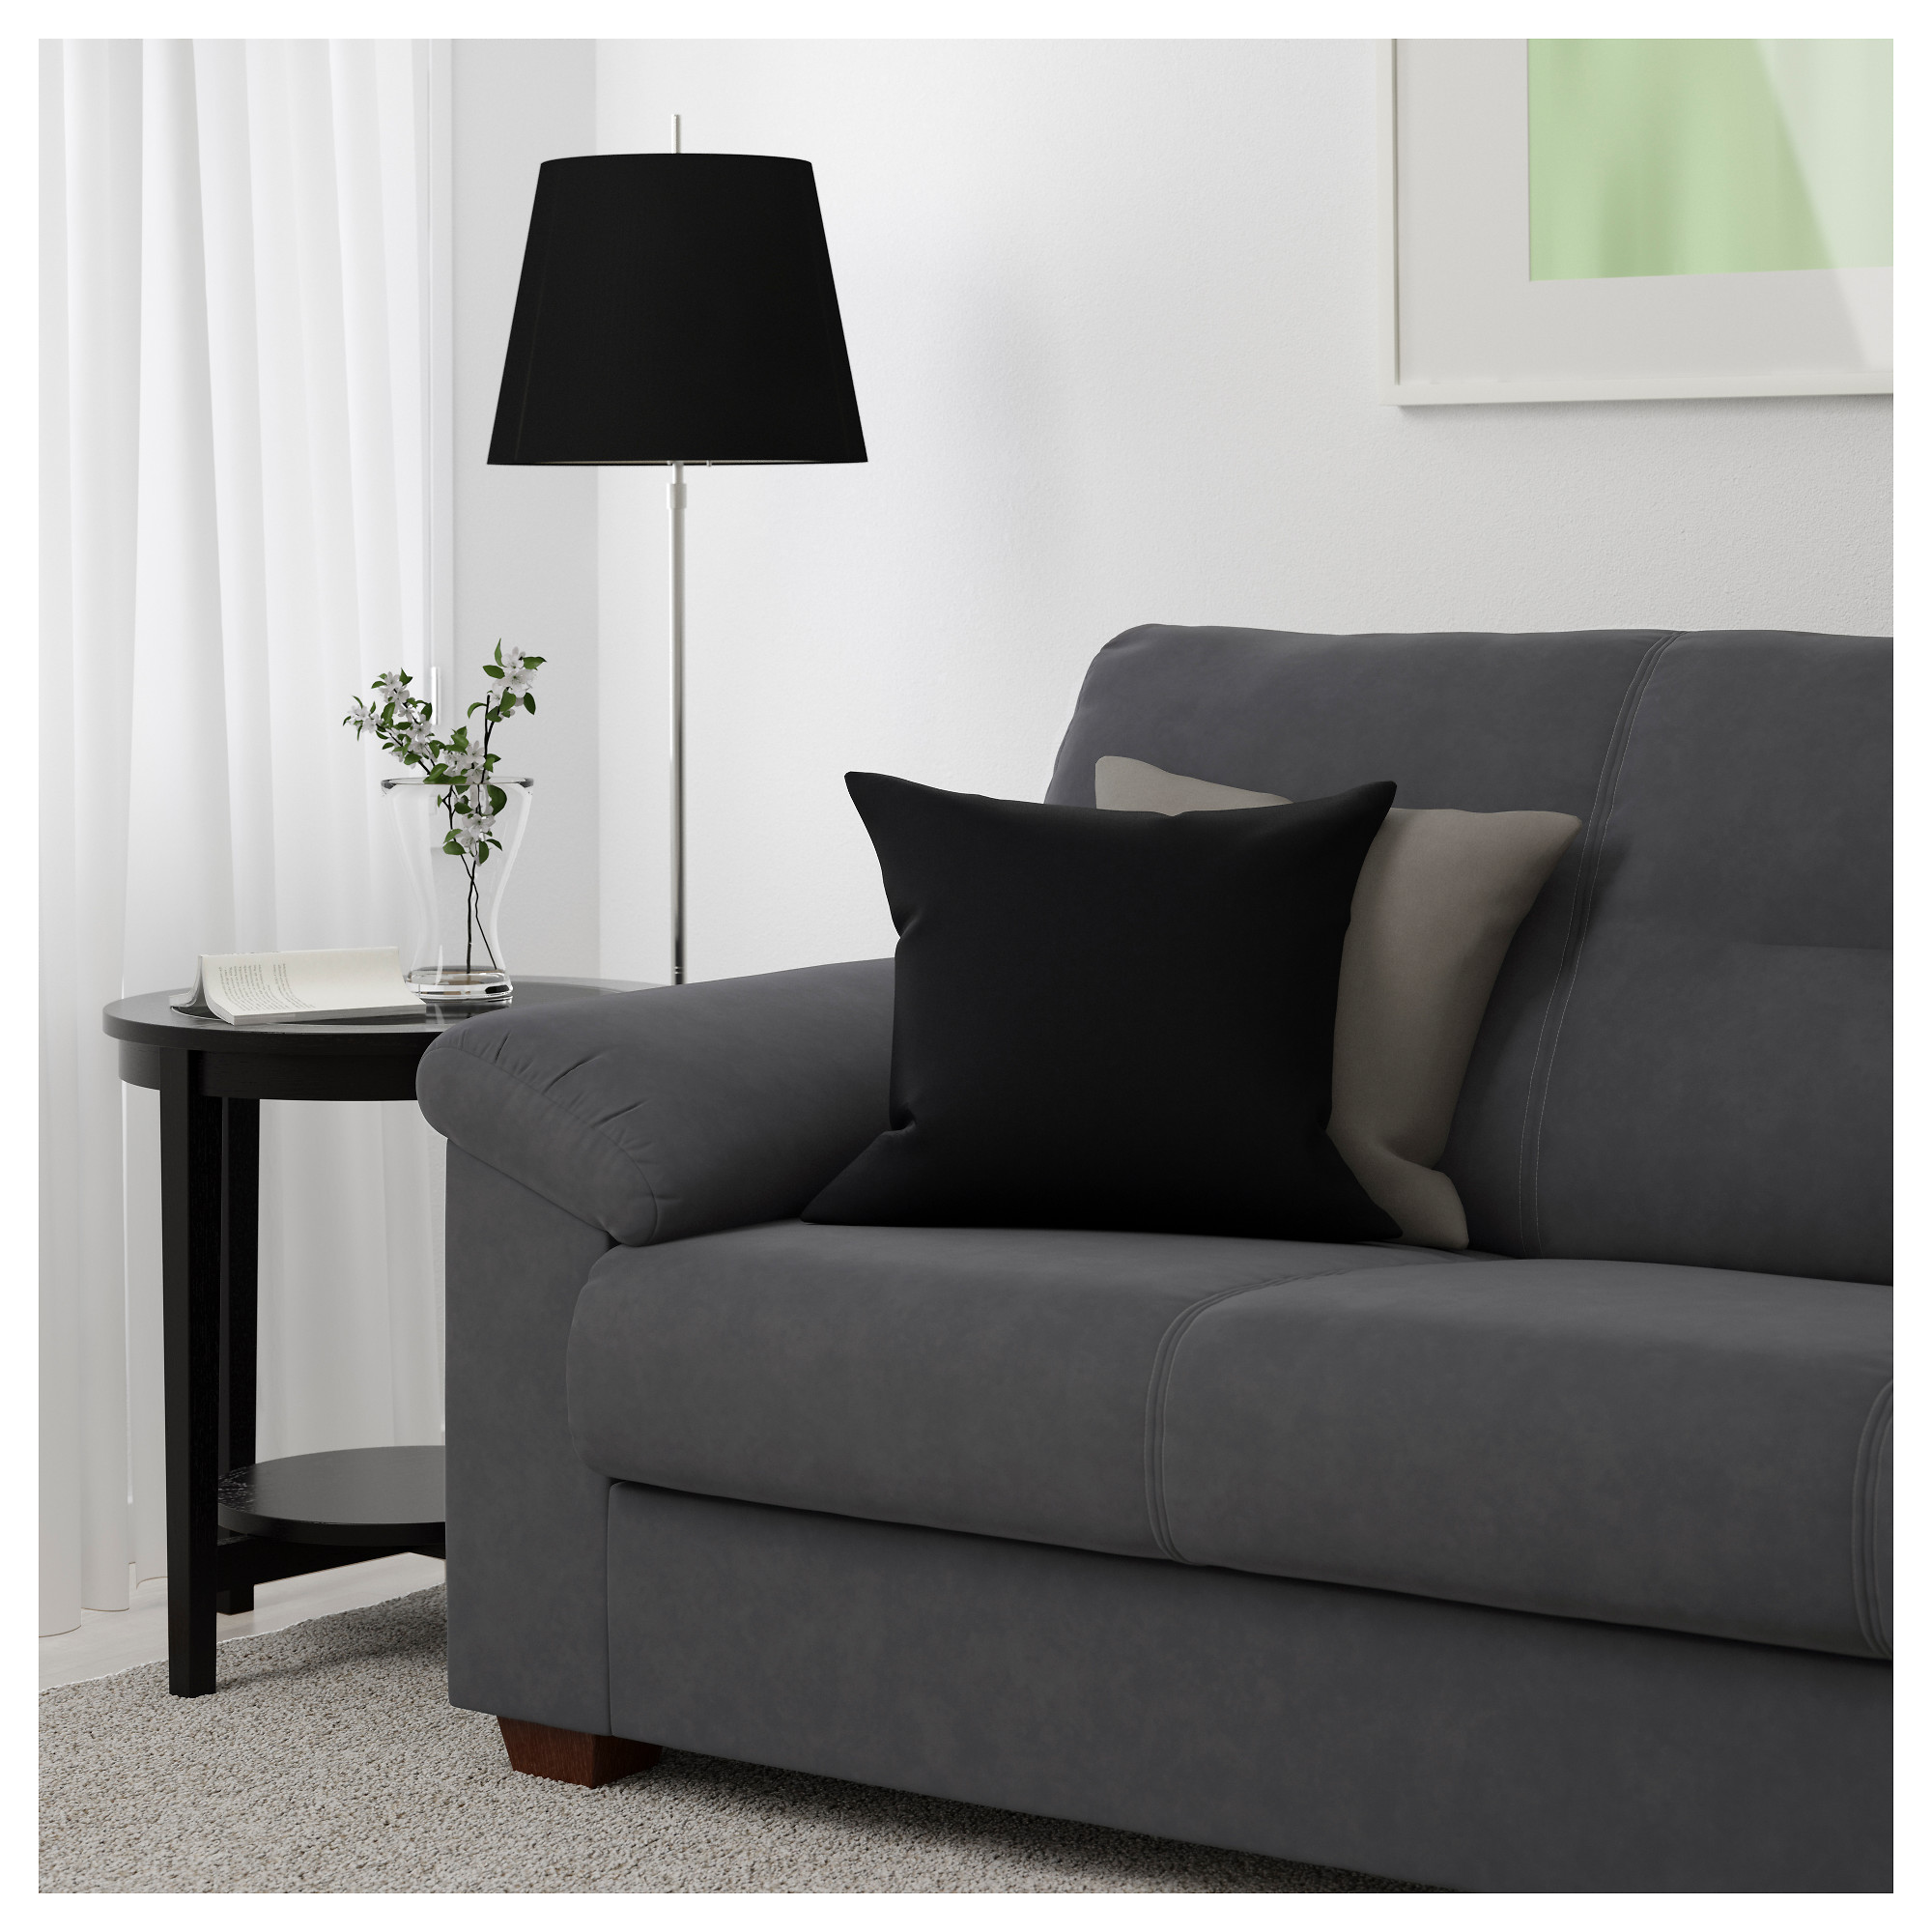 dark gray sectional sofa with collection also fabulous charcoal chaise lounge images design venetian ikea gray sofa knislinge sofa samsta gray ikea thesofa 12312